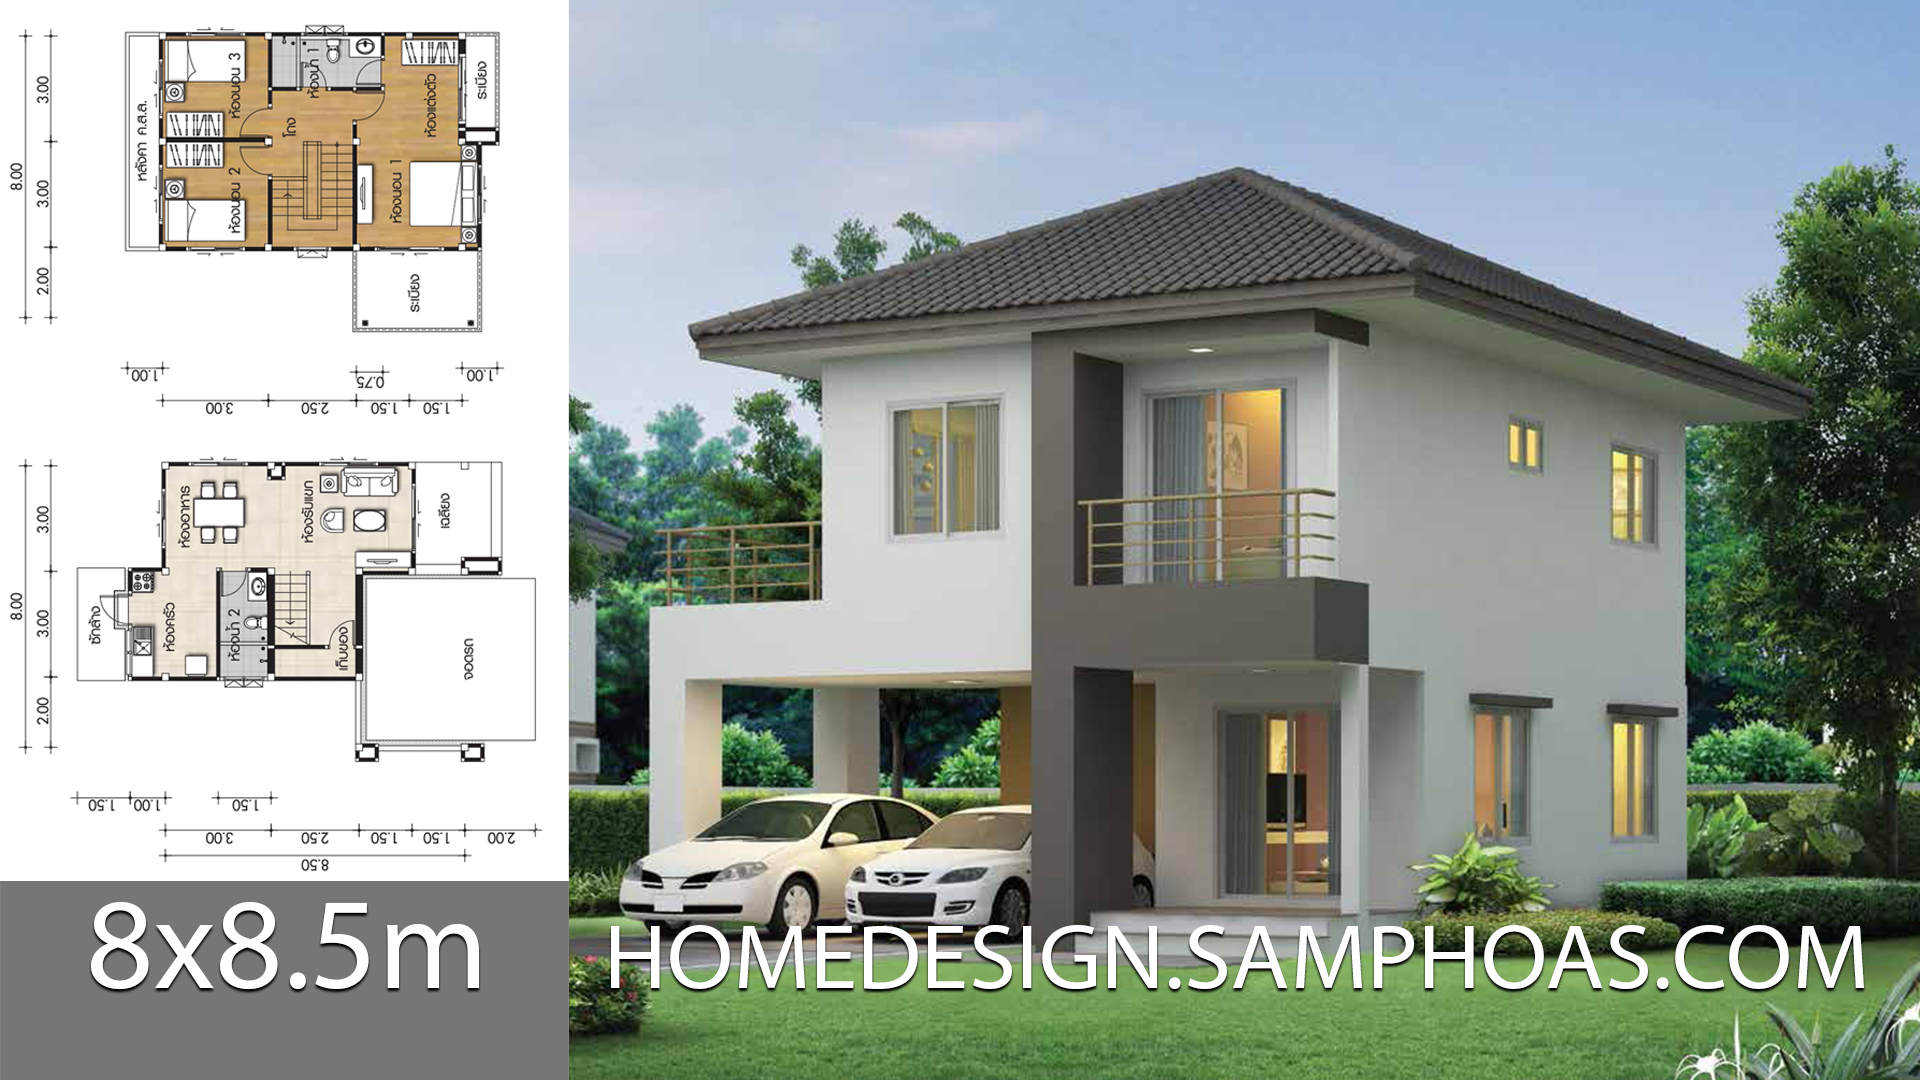 House plans 8x8.5m with 3 bedrooms - Home Ideas